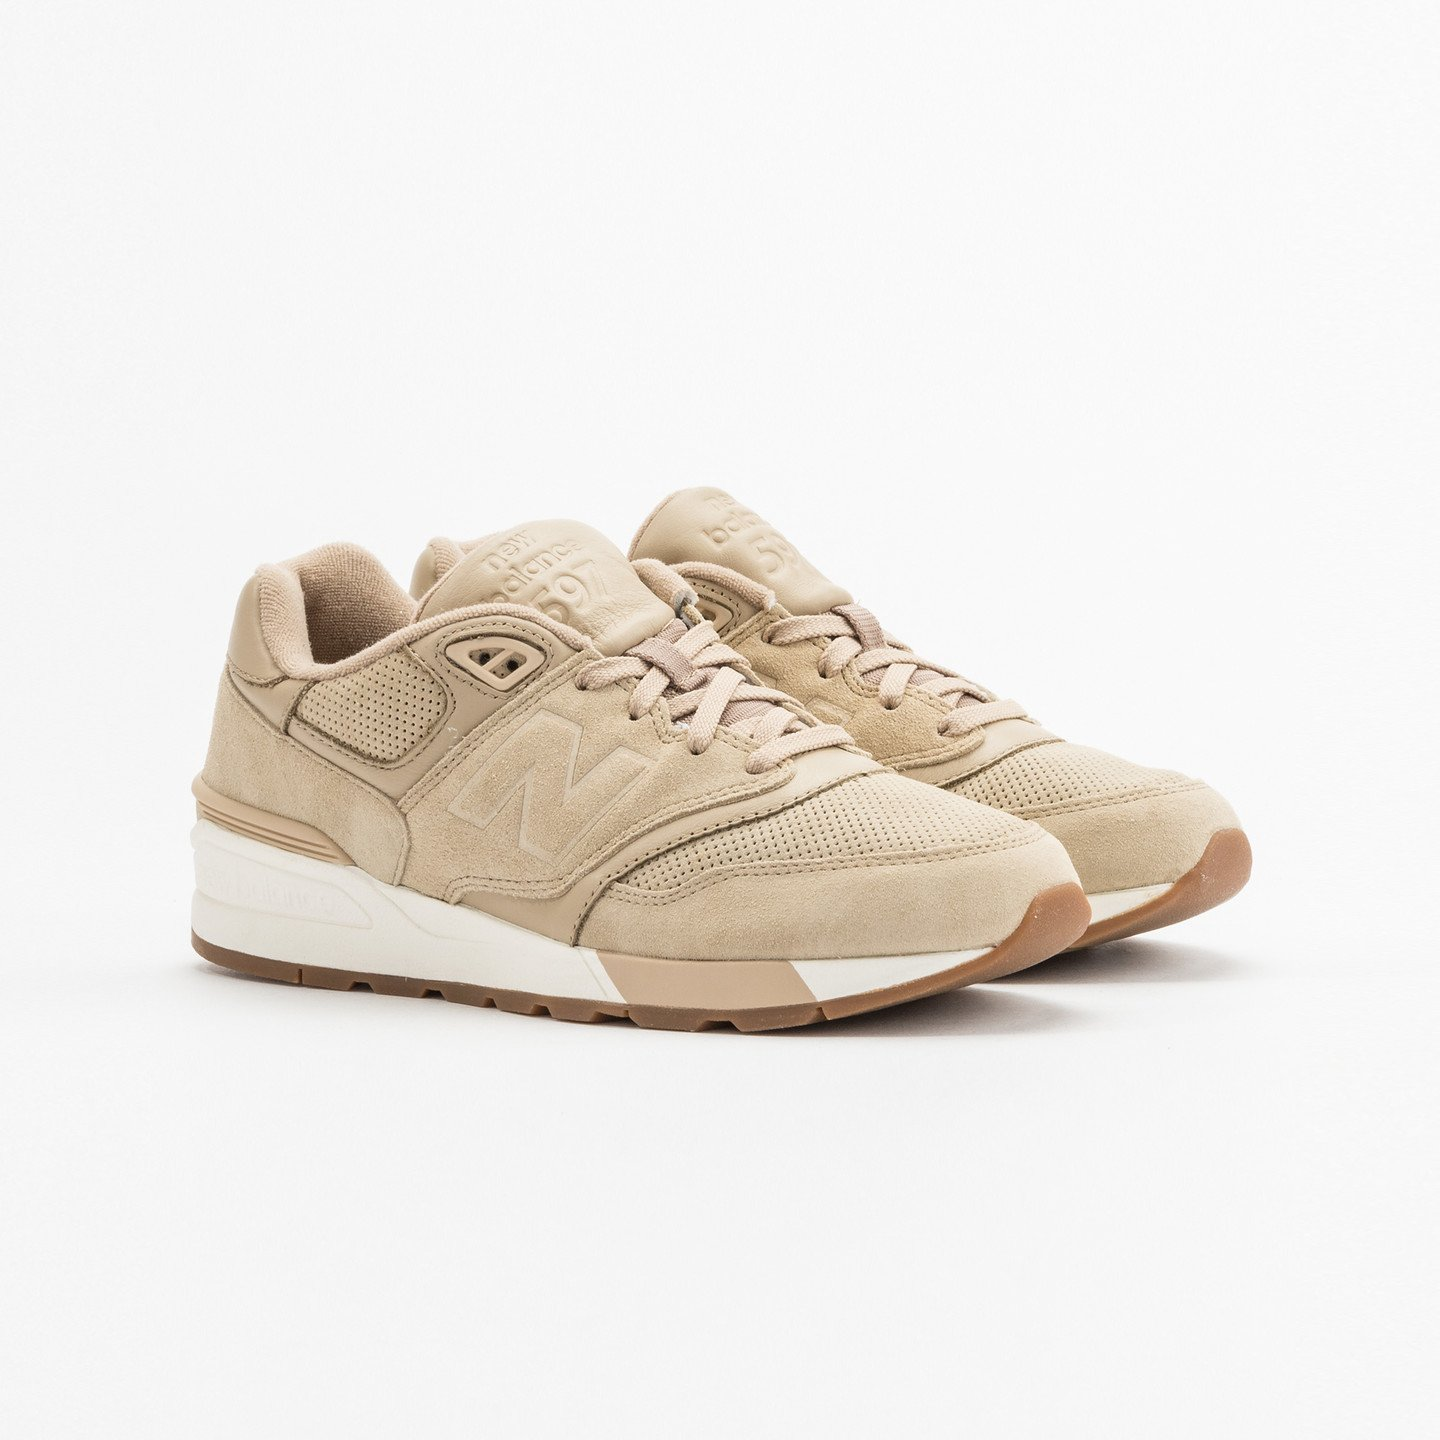 New Balance ML597 Beige / White ML597SKH